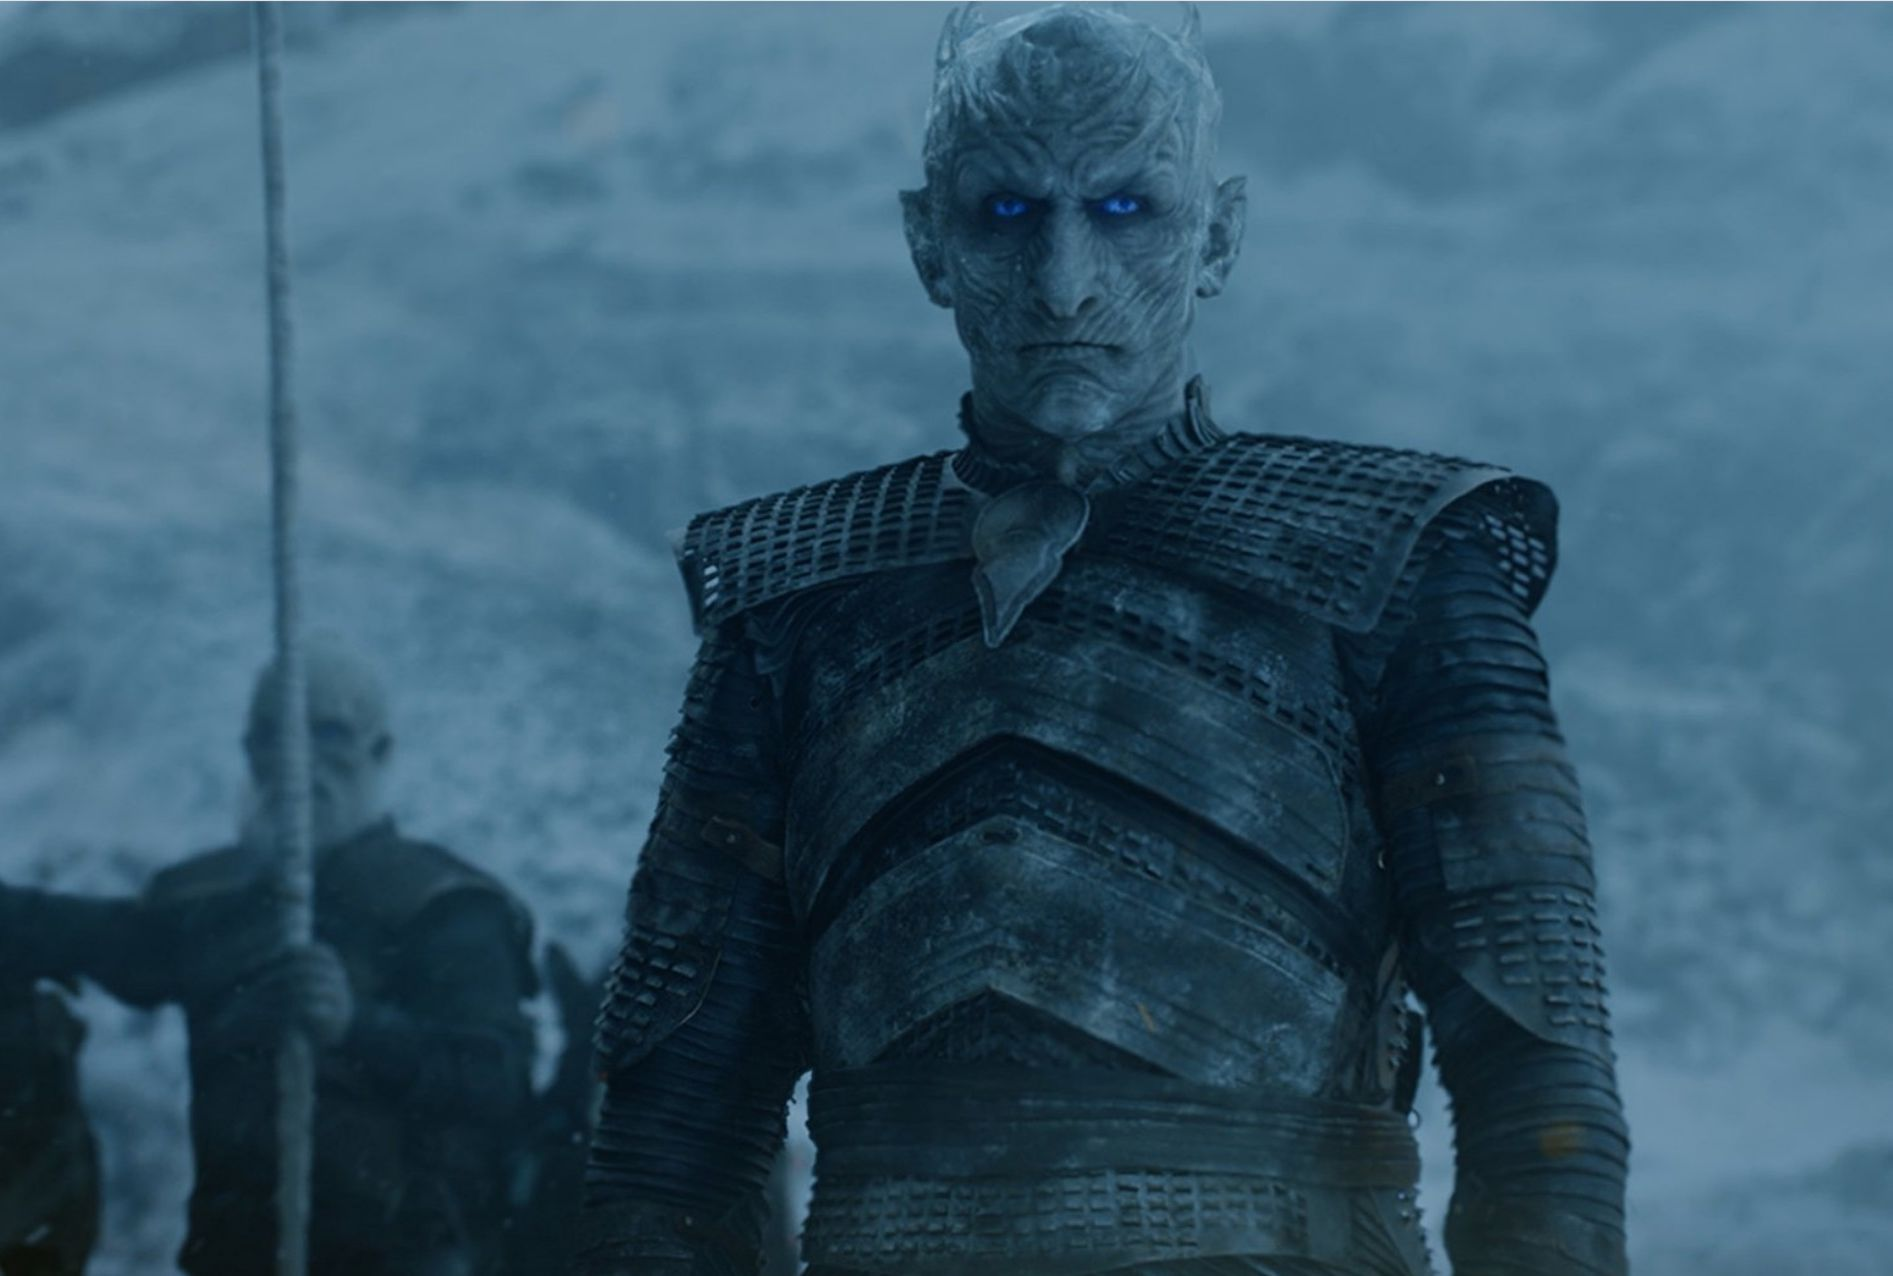 Could the Night King and the White Walkers Be Game of Thrones's Most